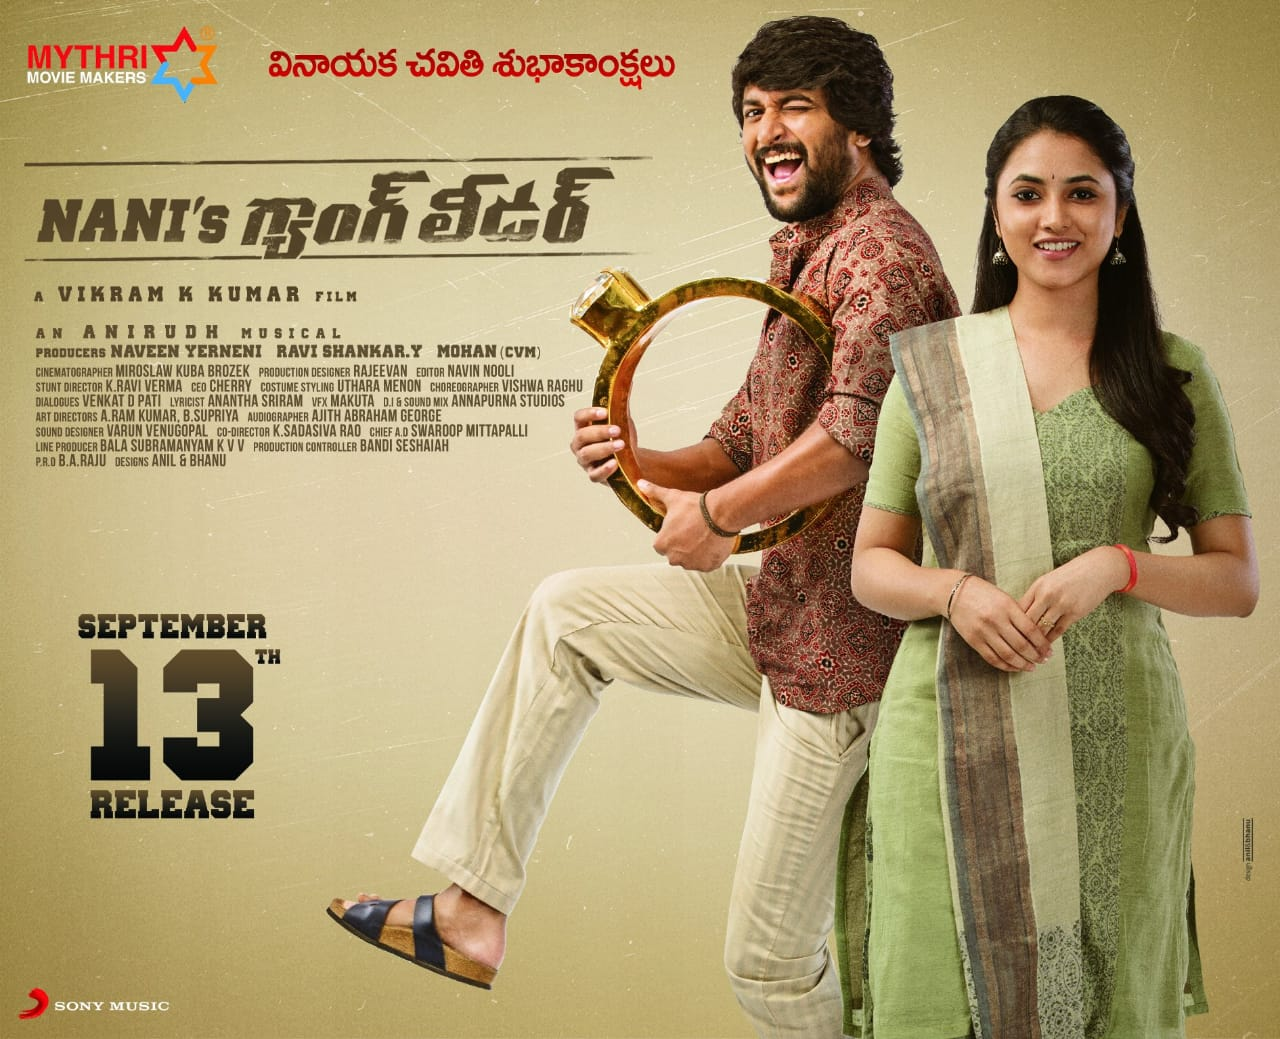 Nani, Priyanka Mohan in Gangleader Movie Vinayaka Chavithi Wishes Poster